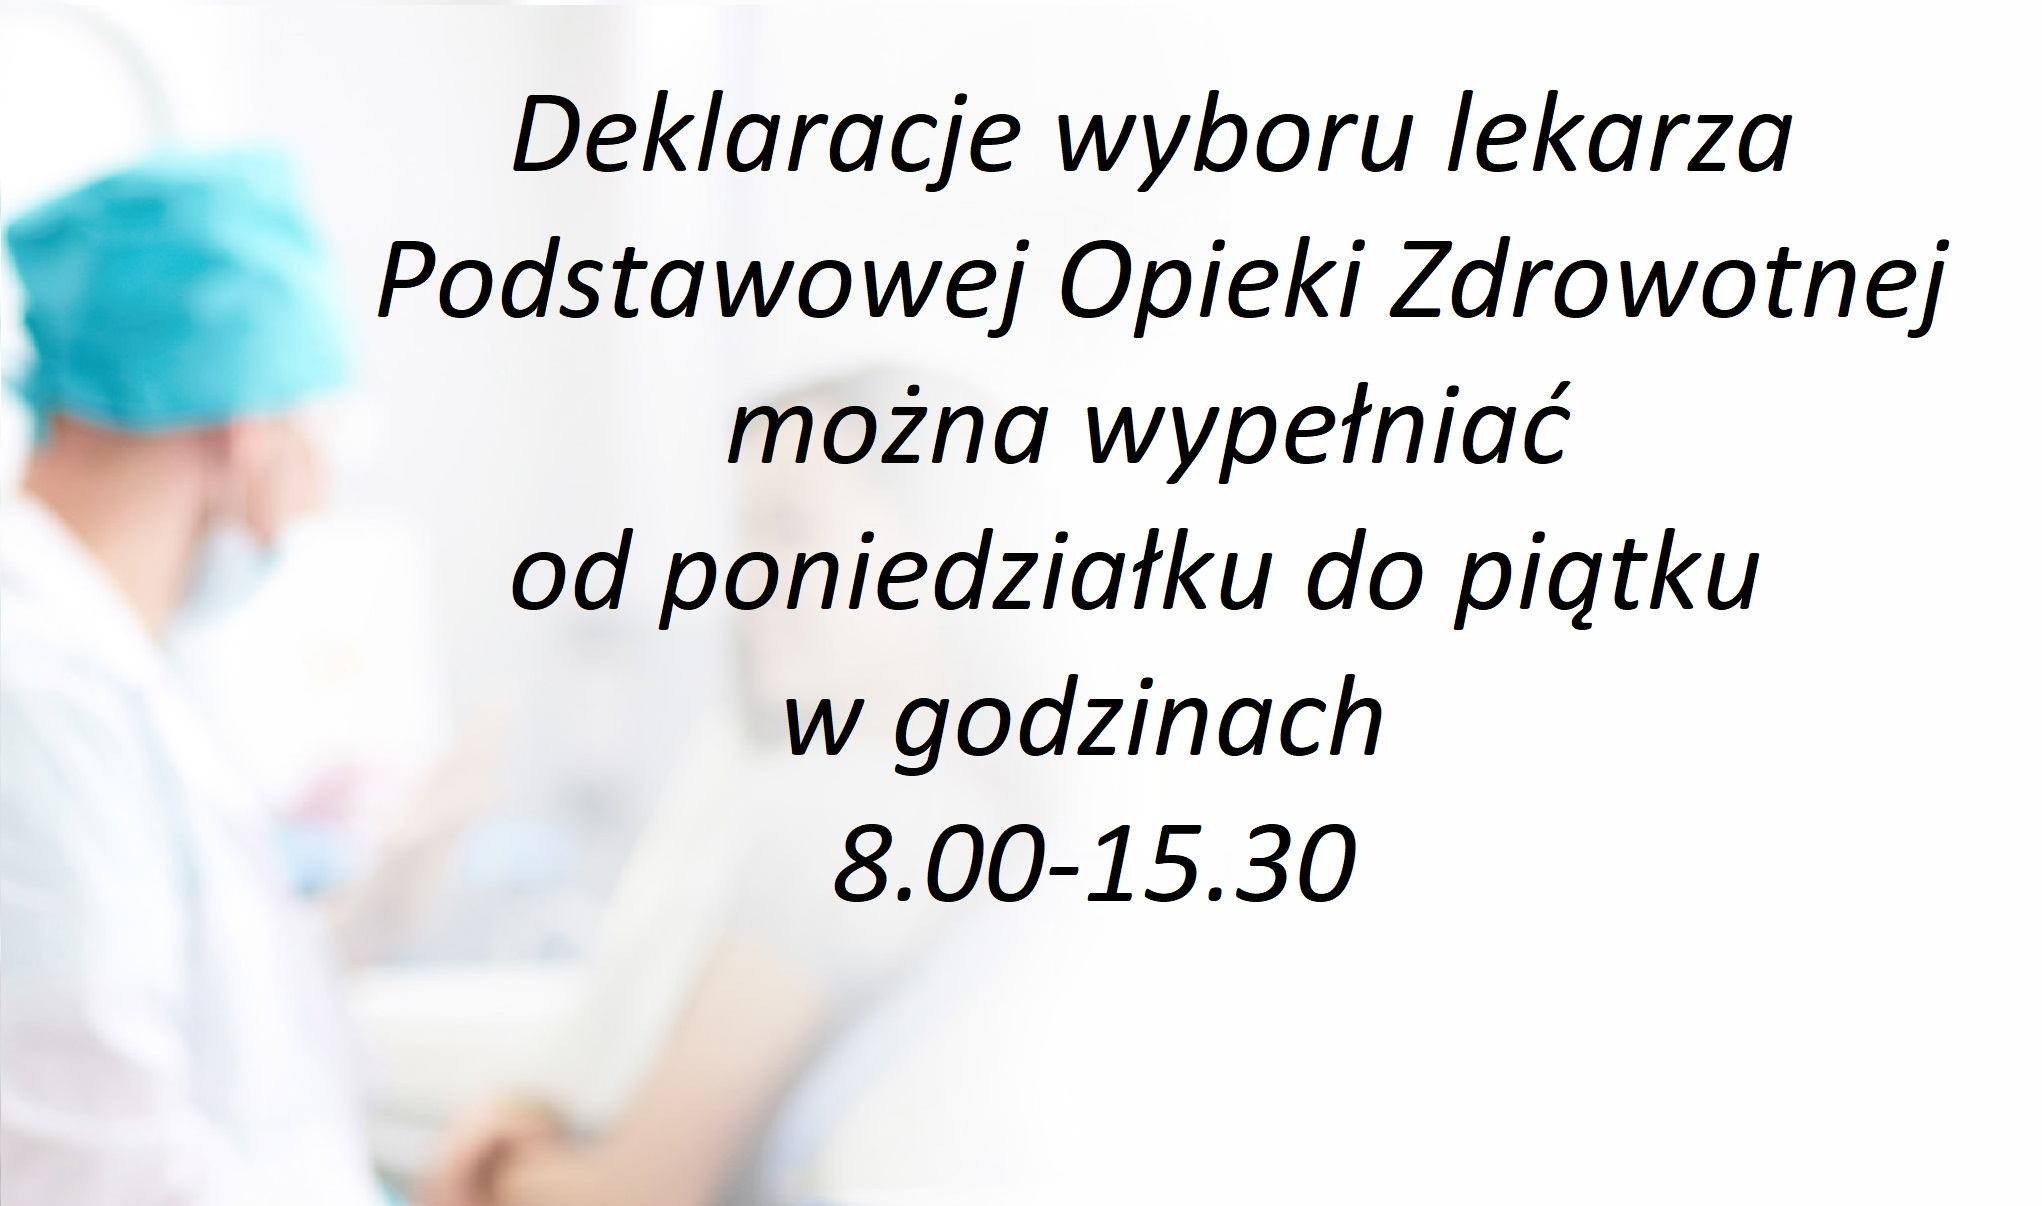 https://zps.tarnow.pl/wp-content/uploads/2018/11/slide21.jpg